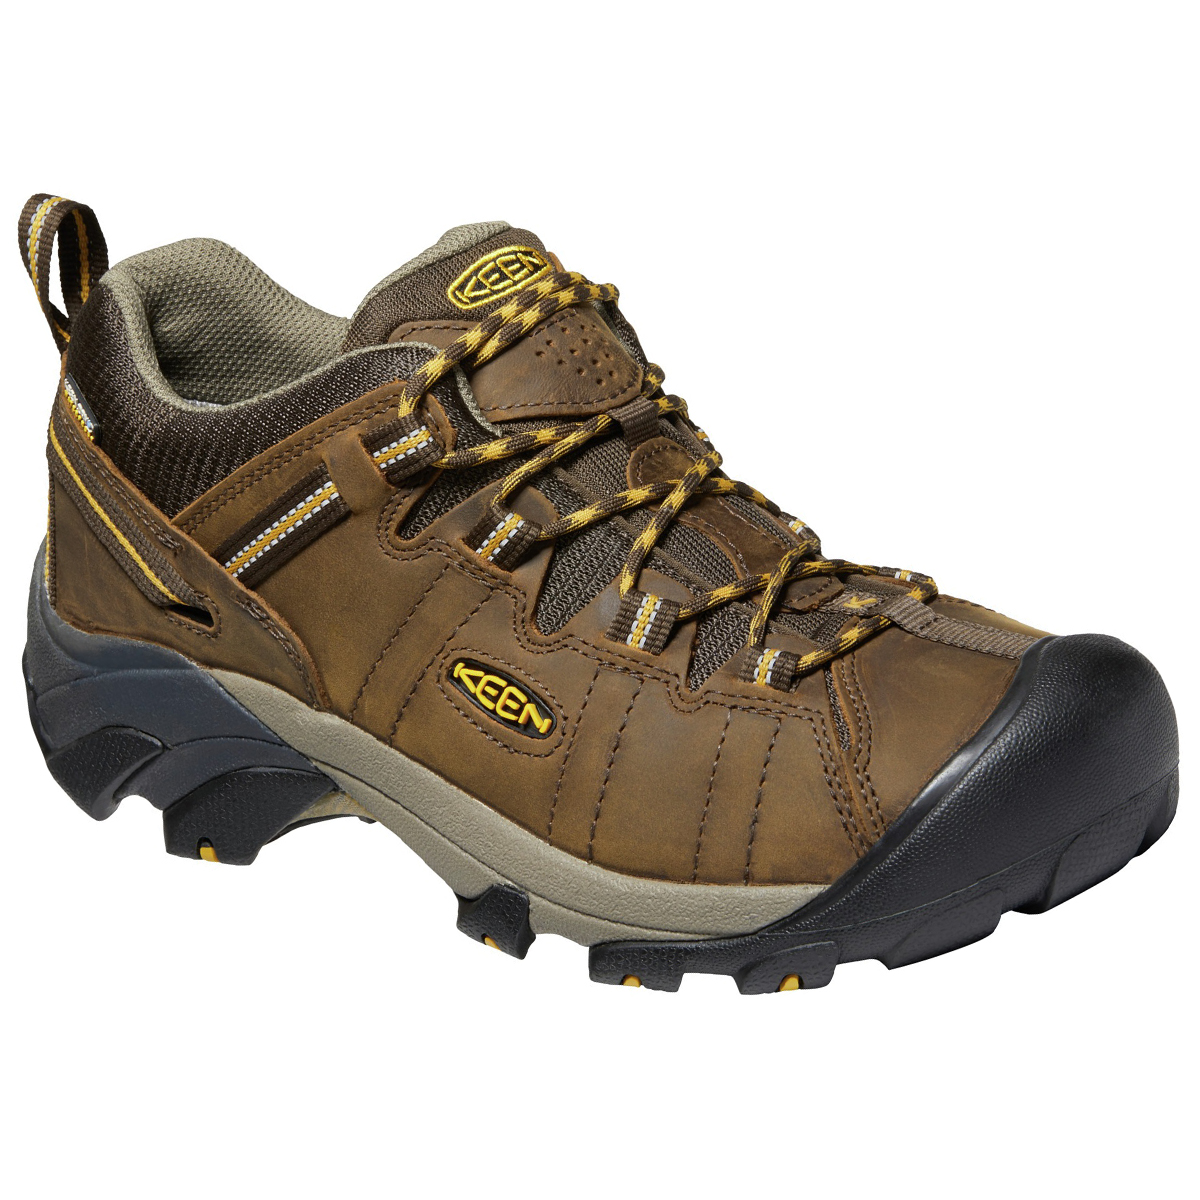 Keen Men's Targhee 2 Low Waterproof Hiking Shoe - Brown, 10